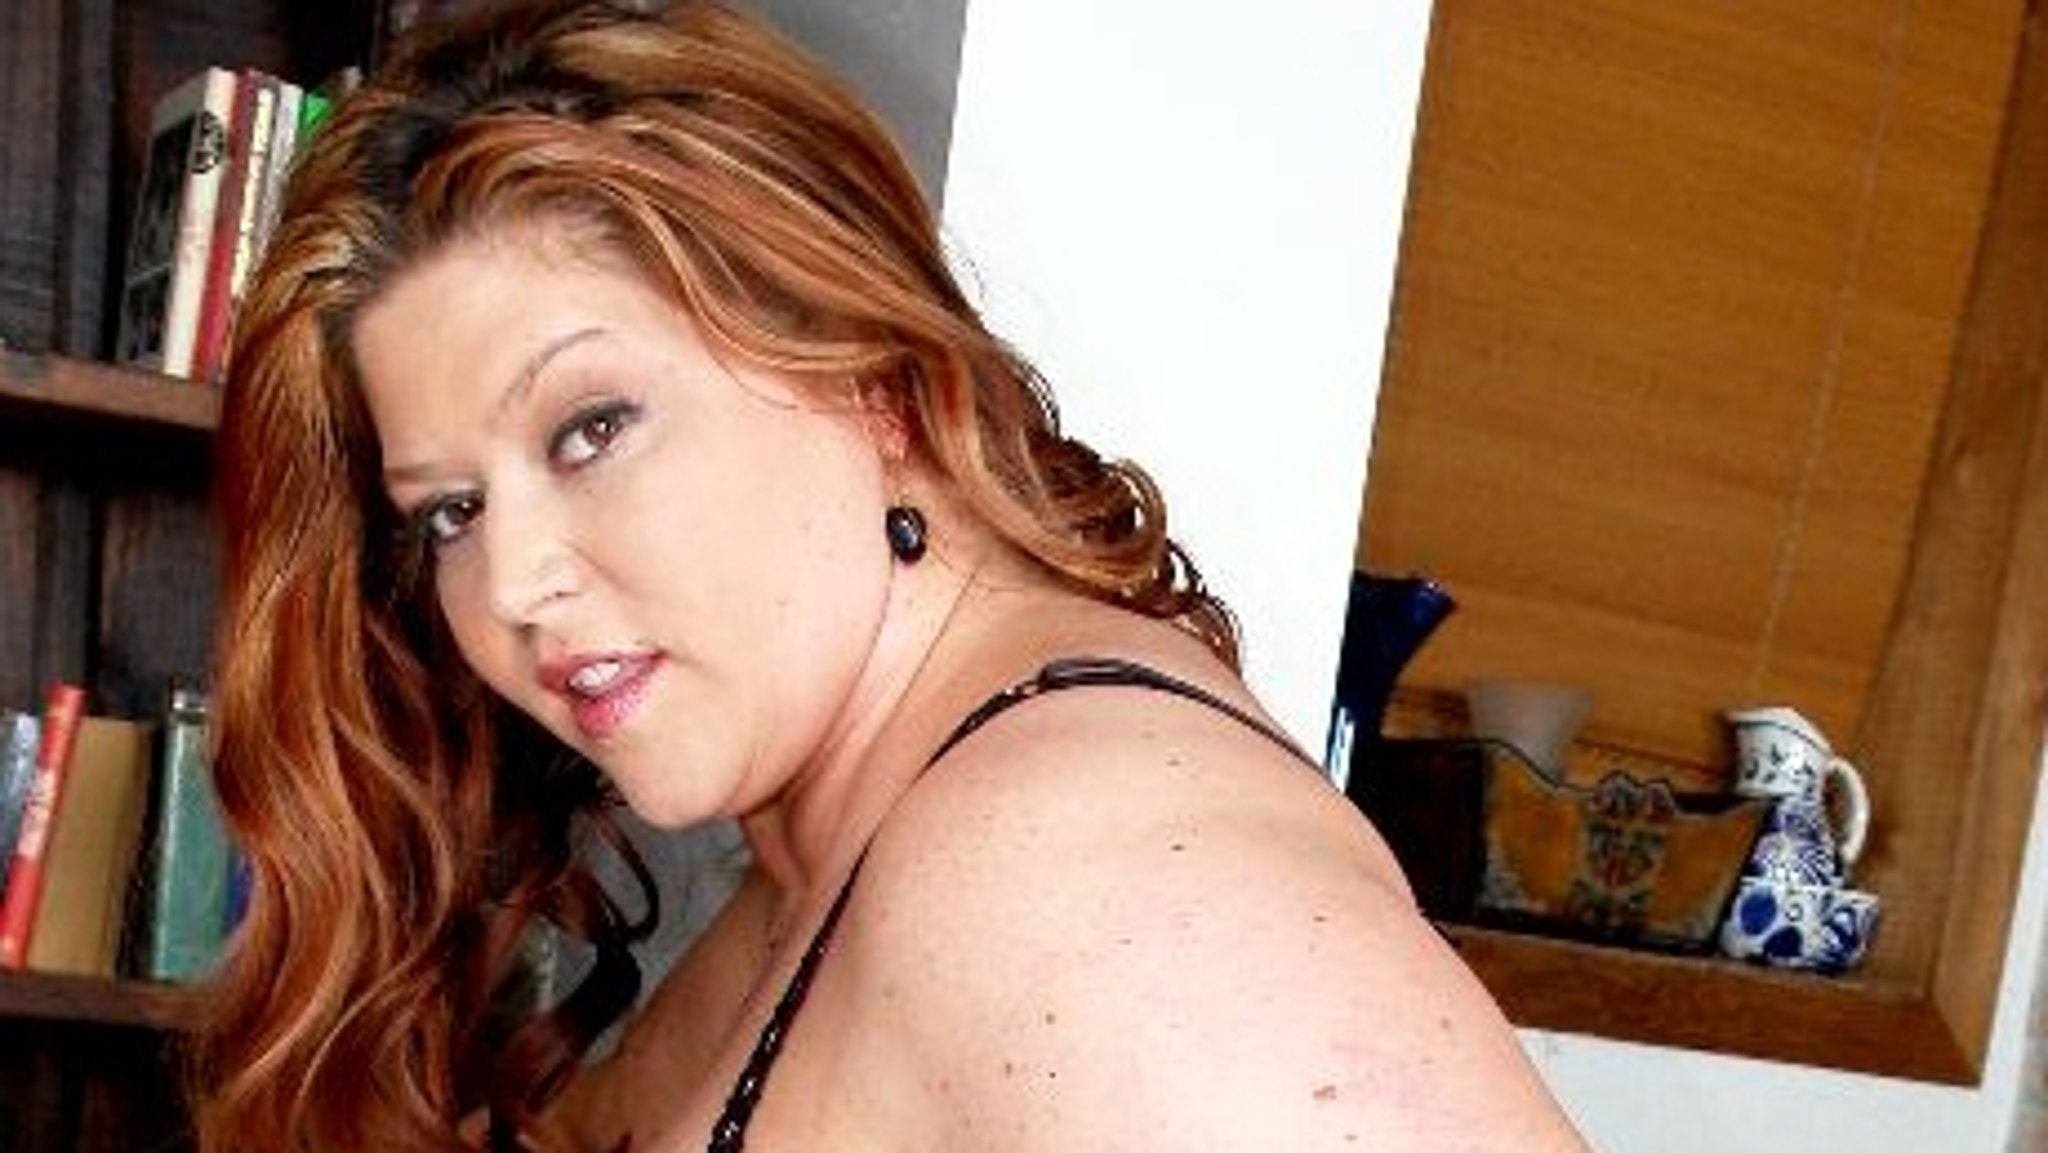 Eden 38DD | Eden. I told her a funny story she laughed and